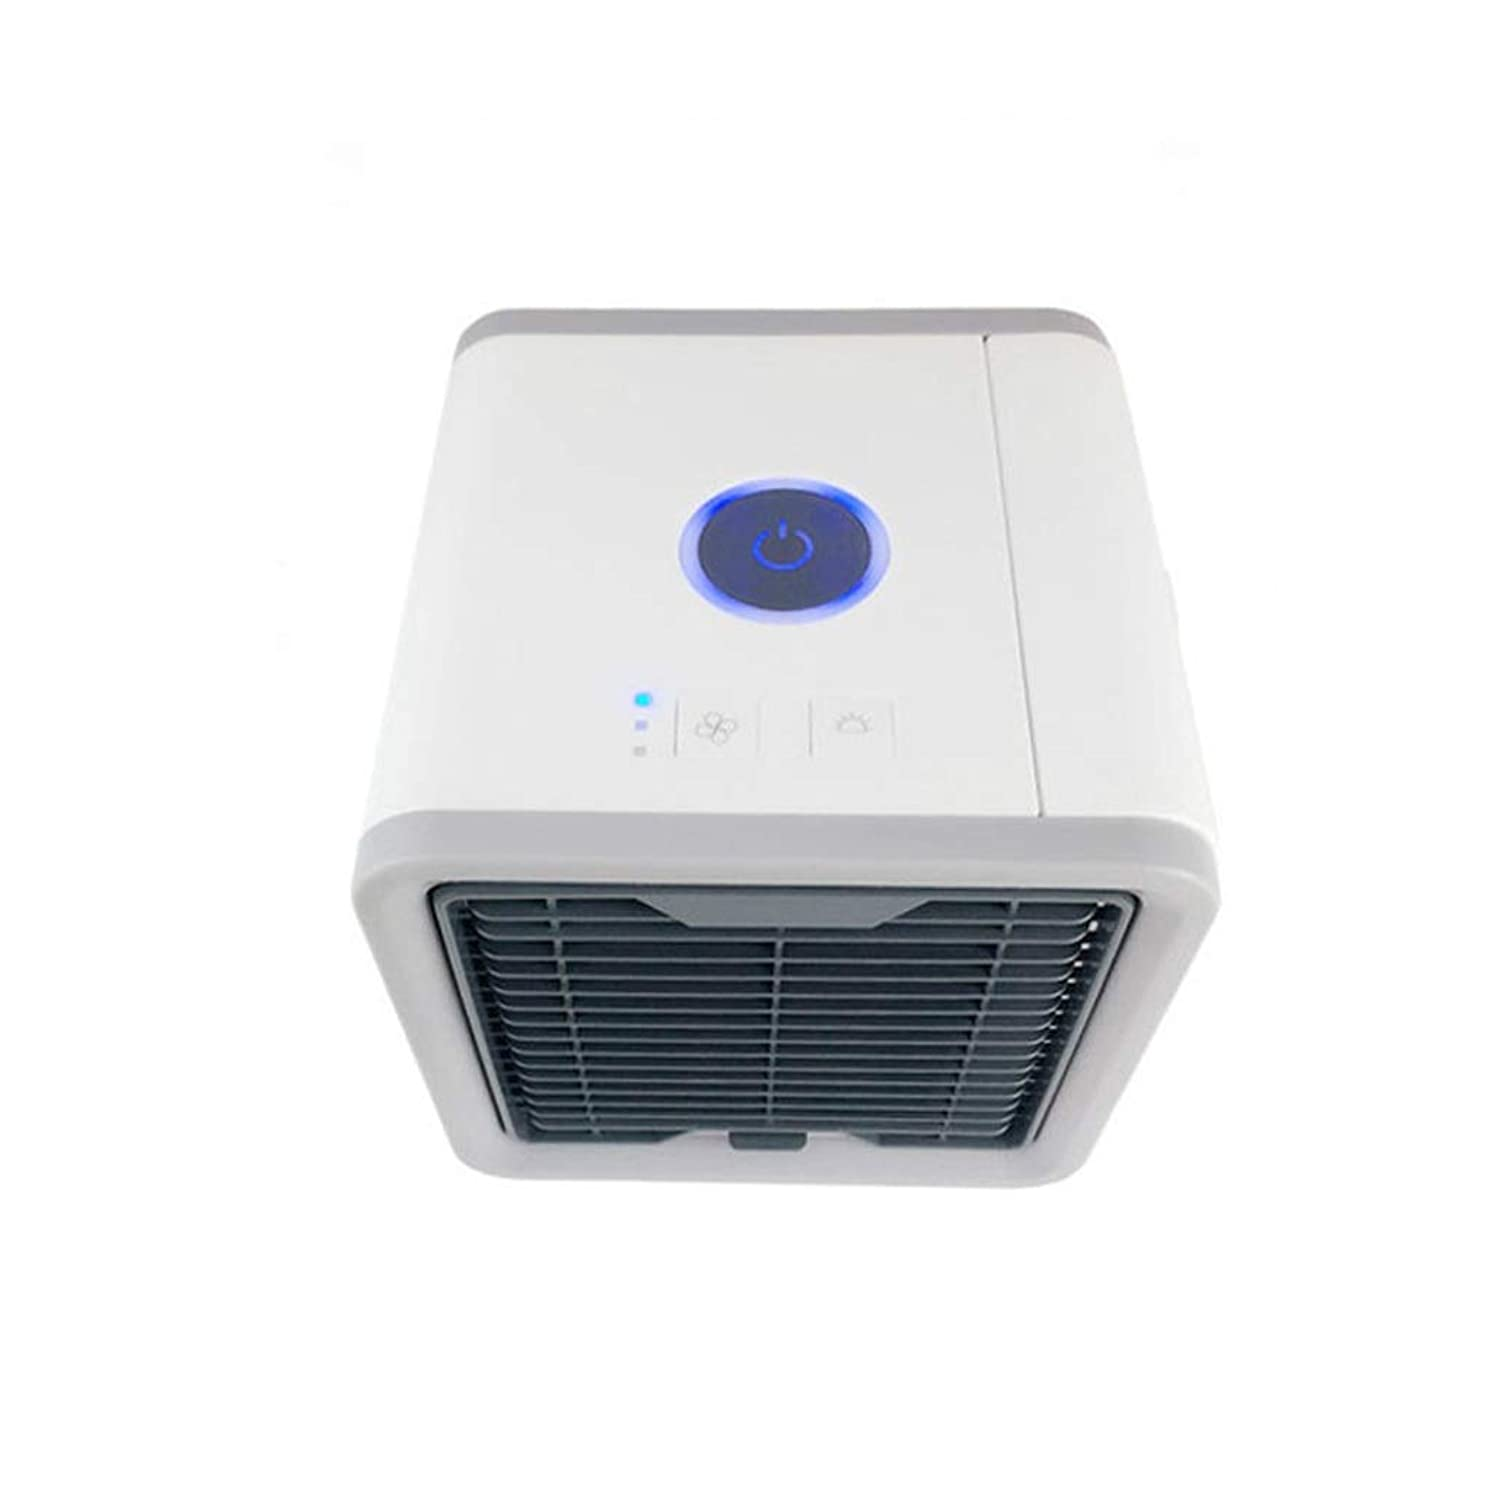 PIPIXIA Personal Air Cooler USB Personal Space Air Conditioner Mini Personal Space Air Cooler - Humidifier - Cooling Fan